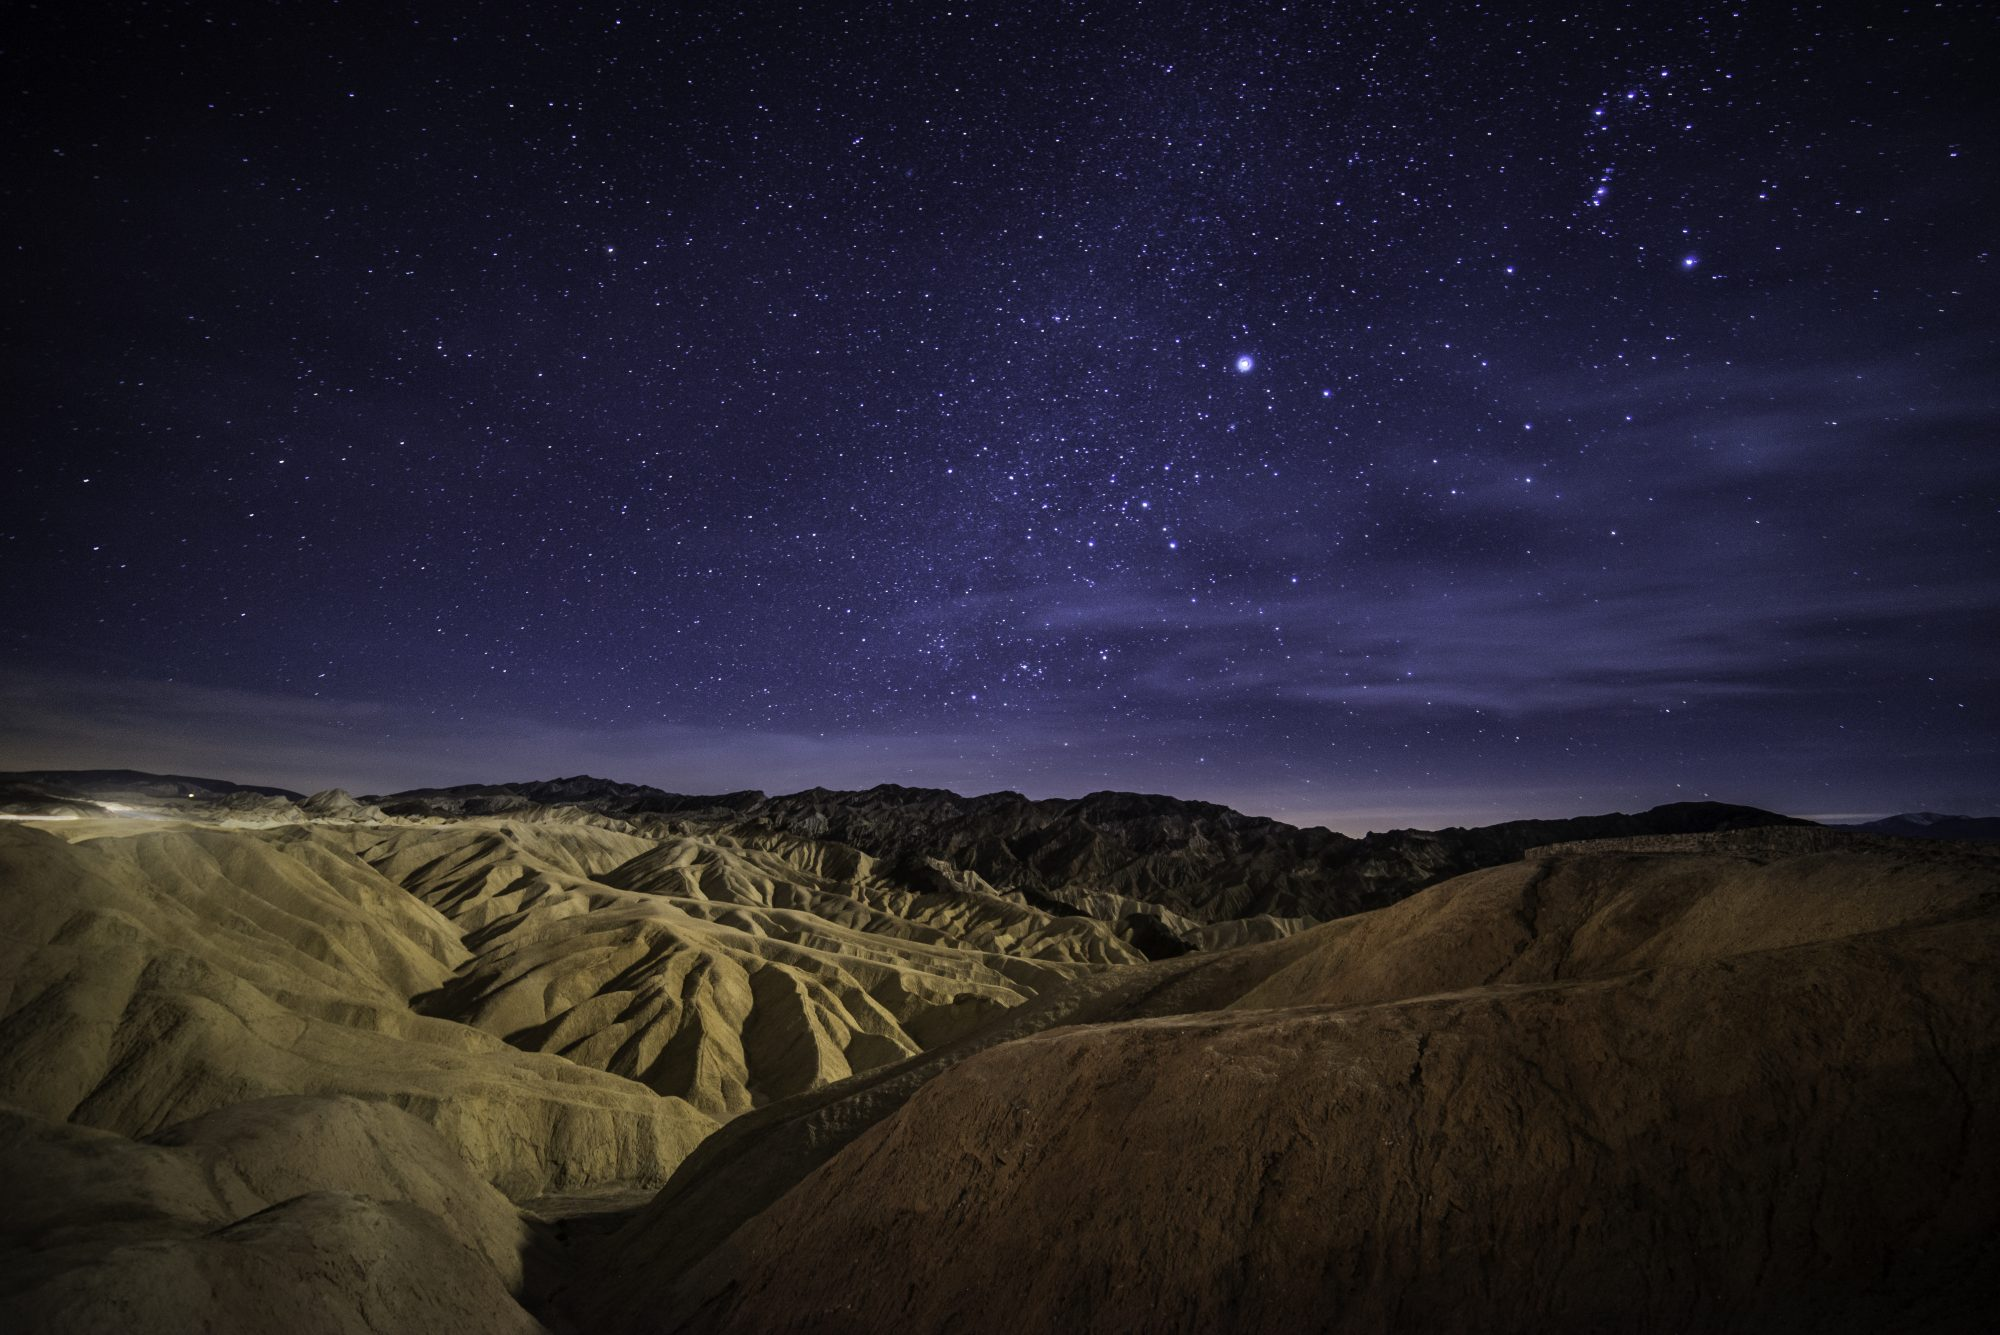 stargazing view at death valley national park